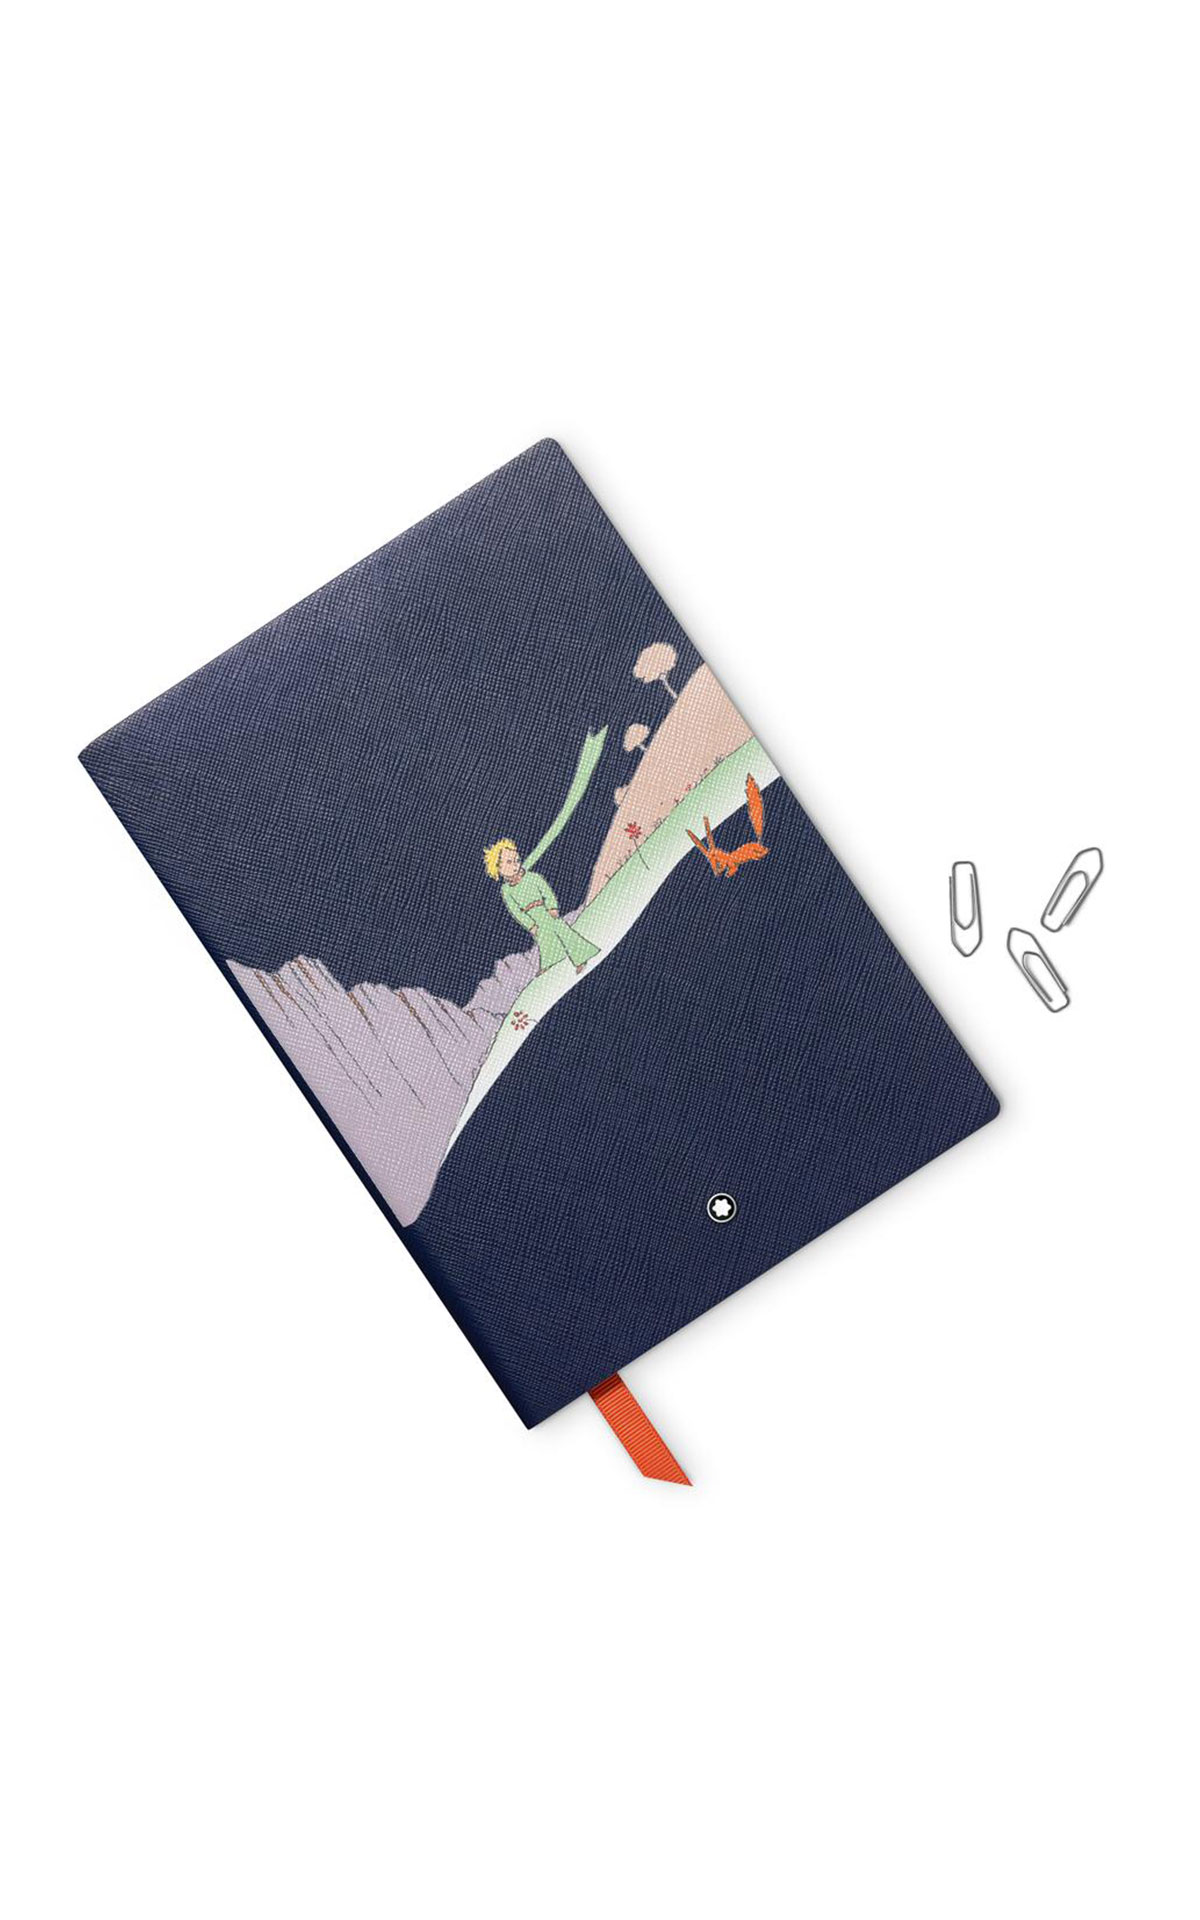 Montblanc Petit prince notebook from Bicester Village